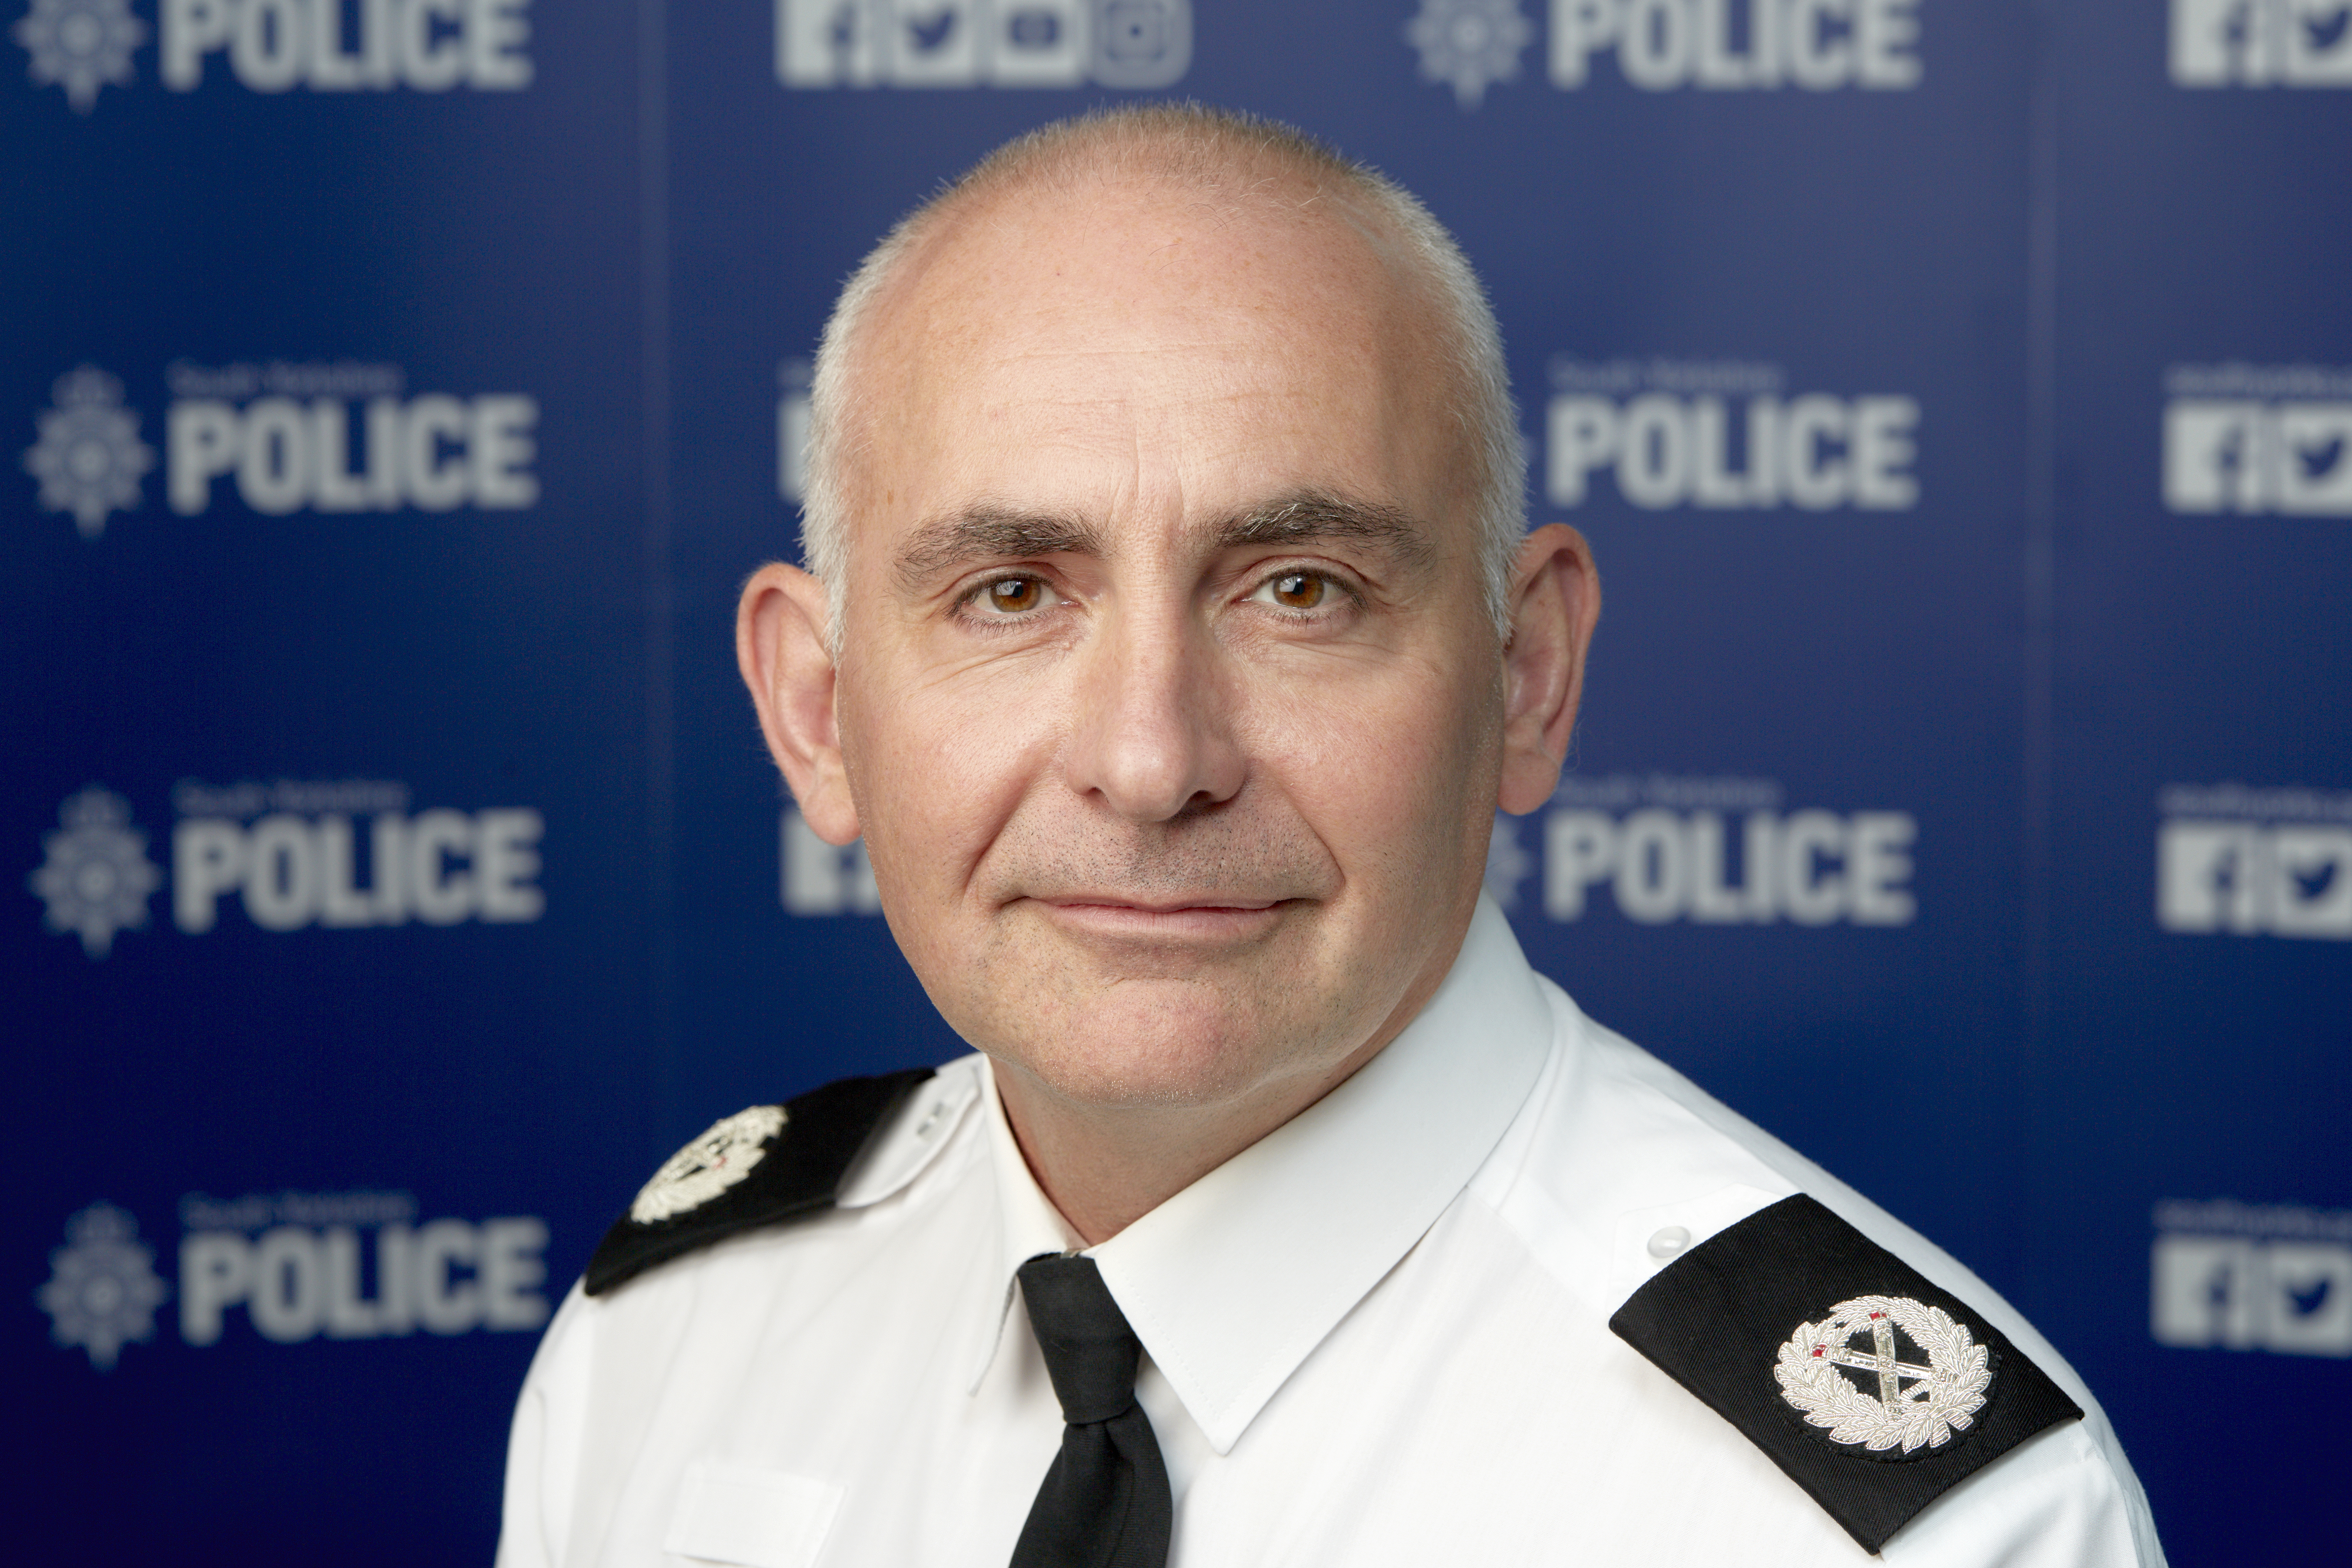 ACC David Hartley